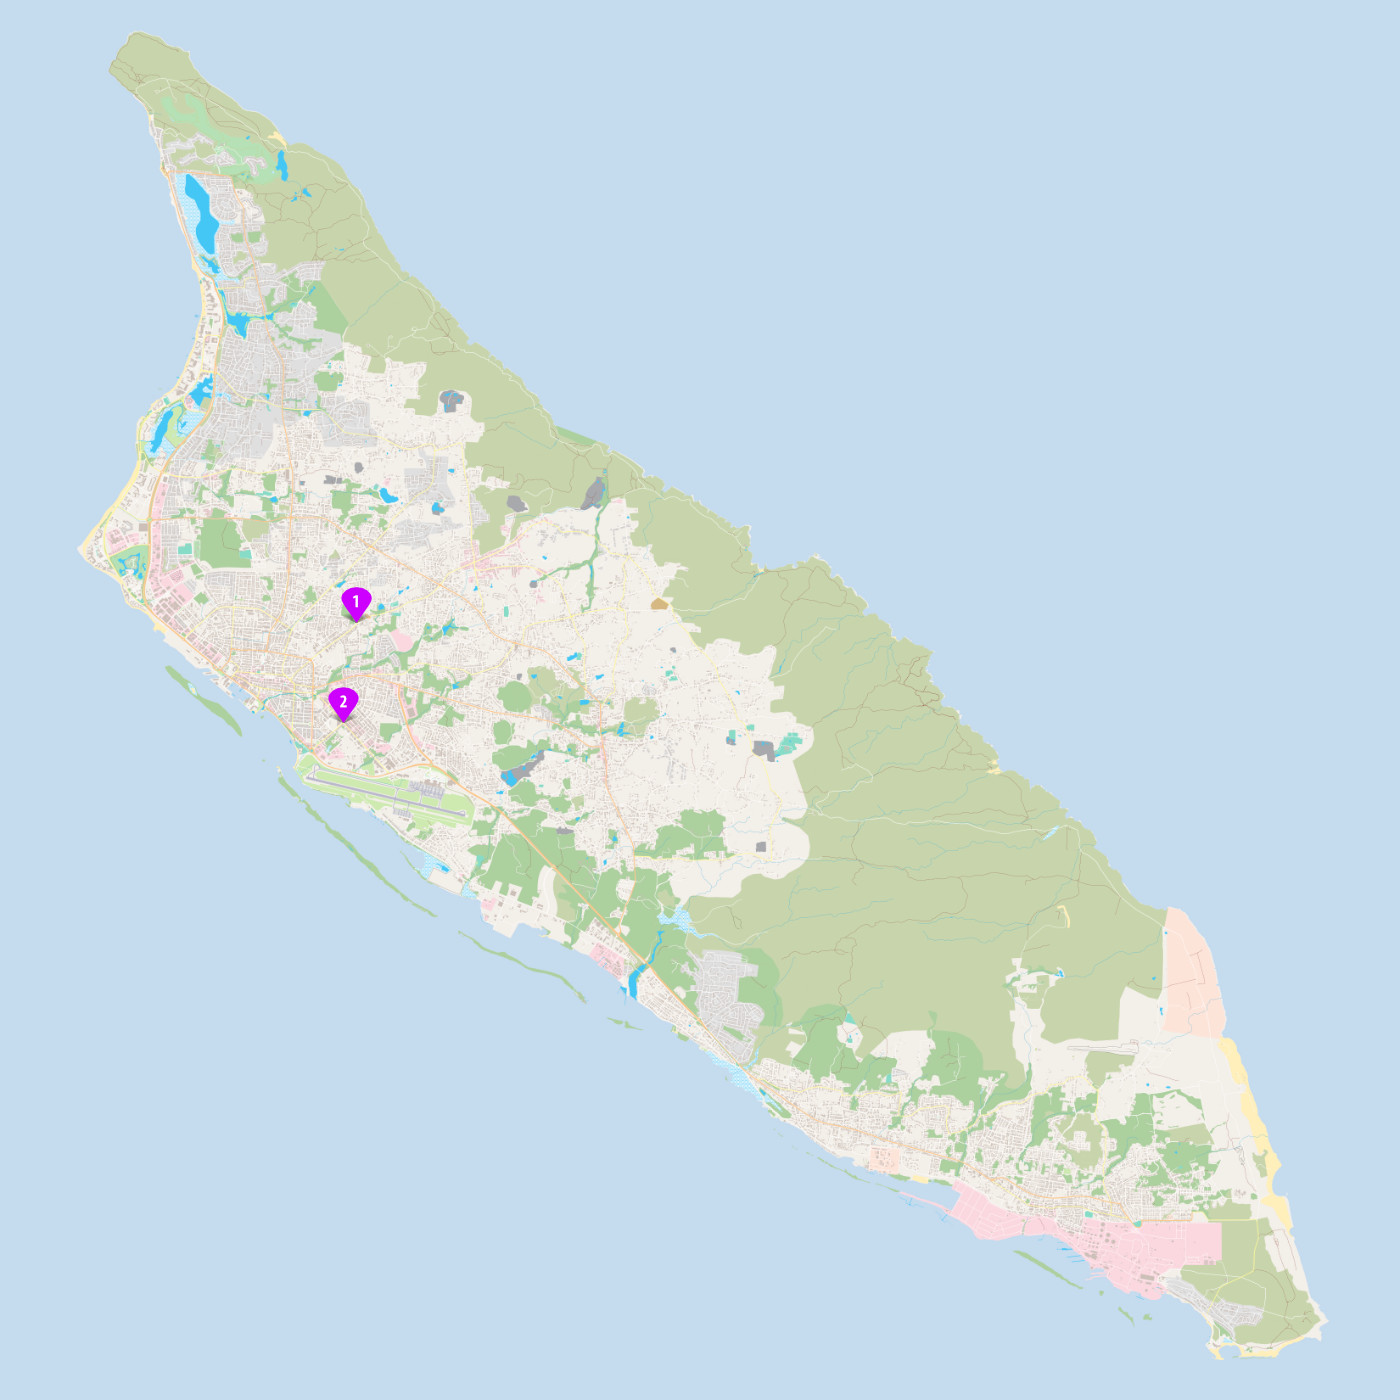 Map of Aruba with the location of two billboards